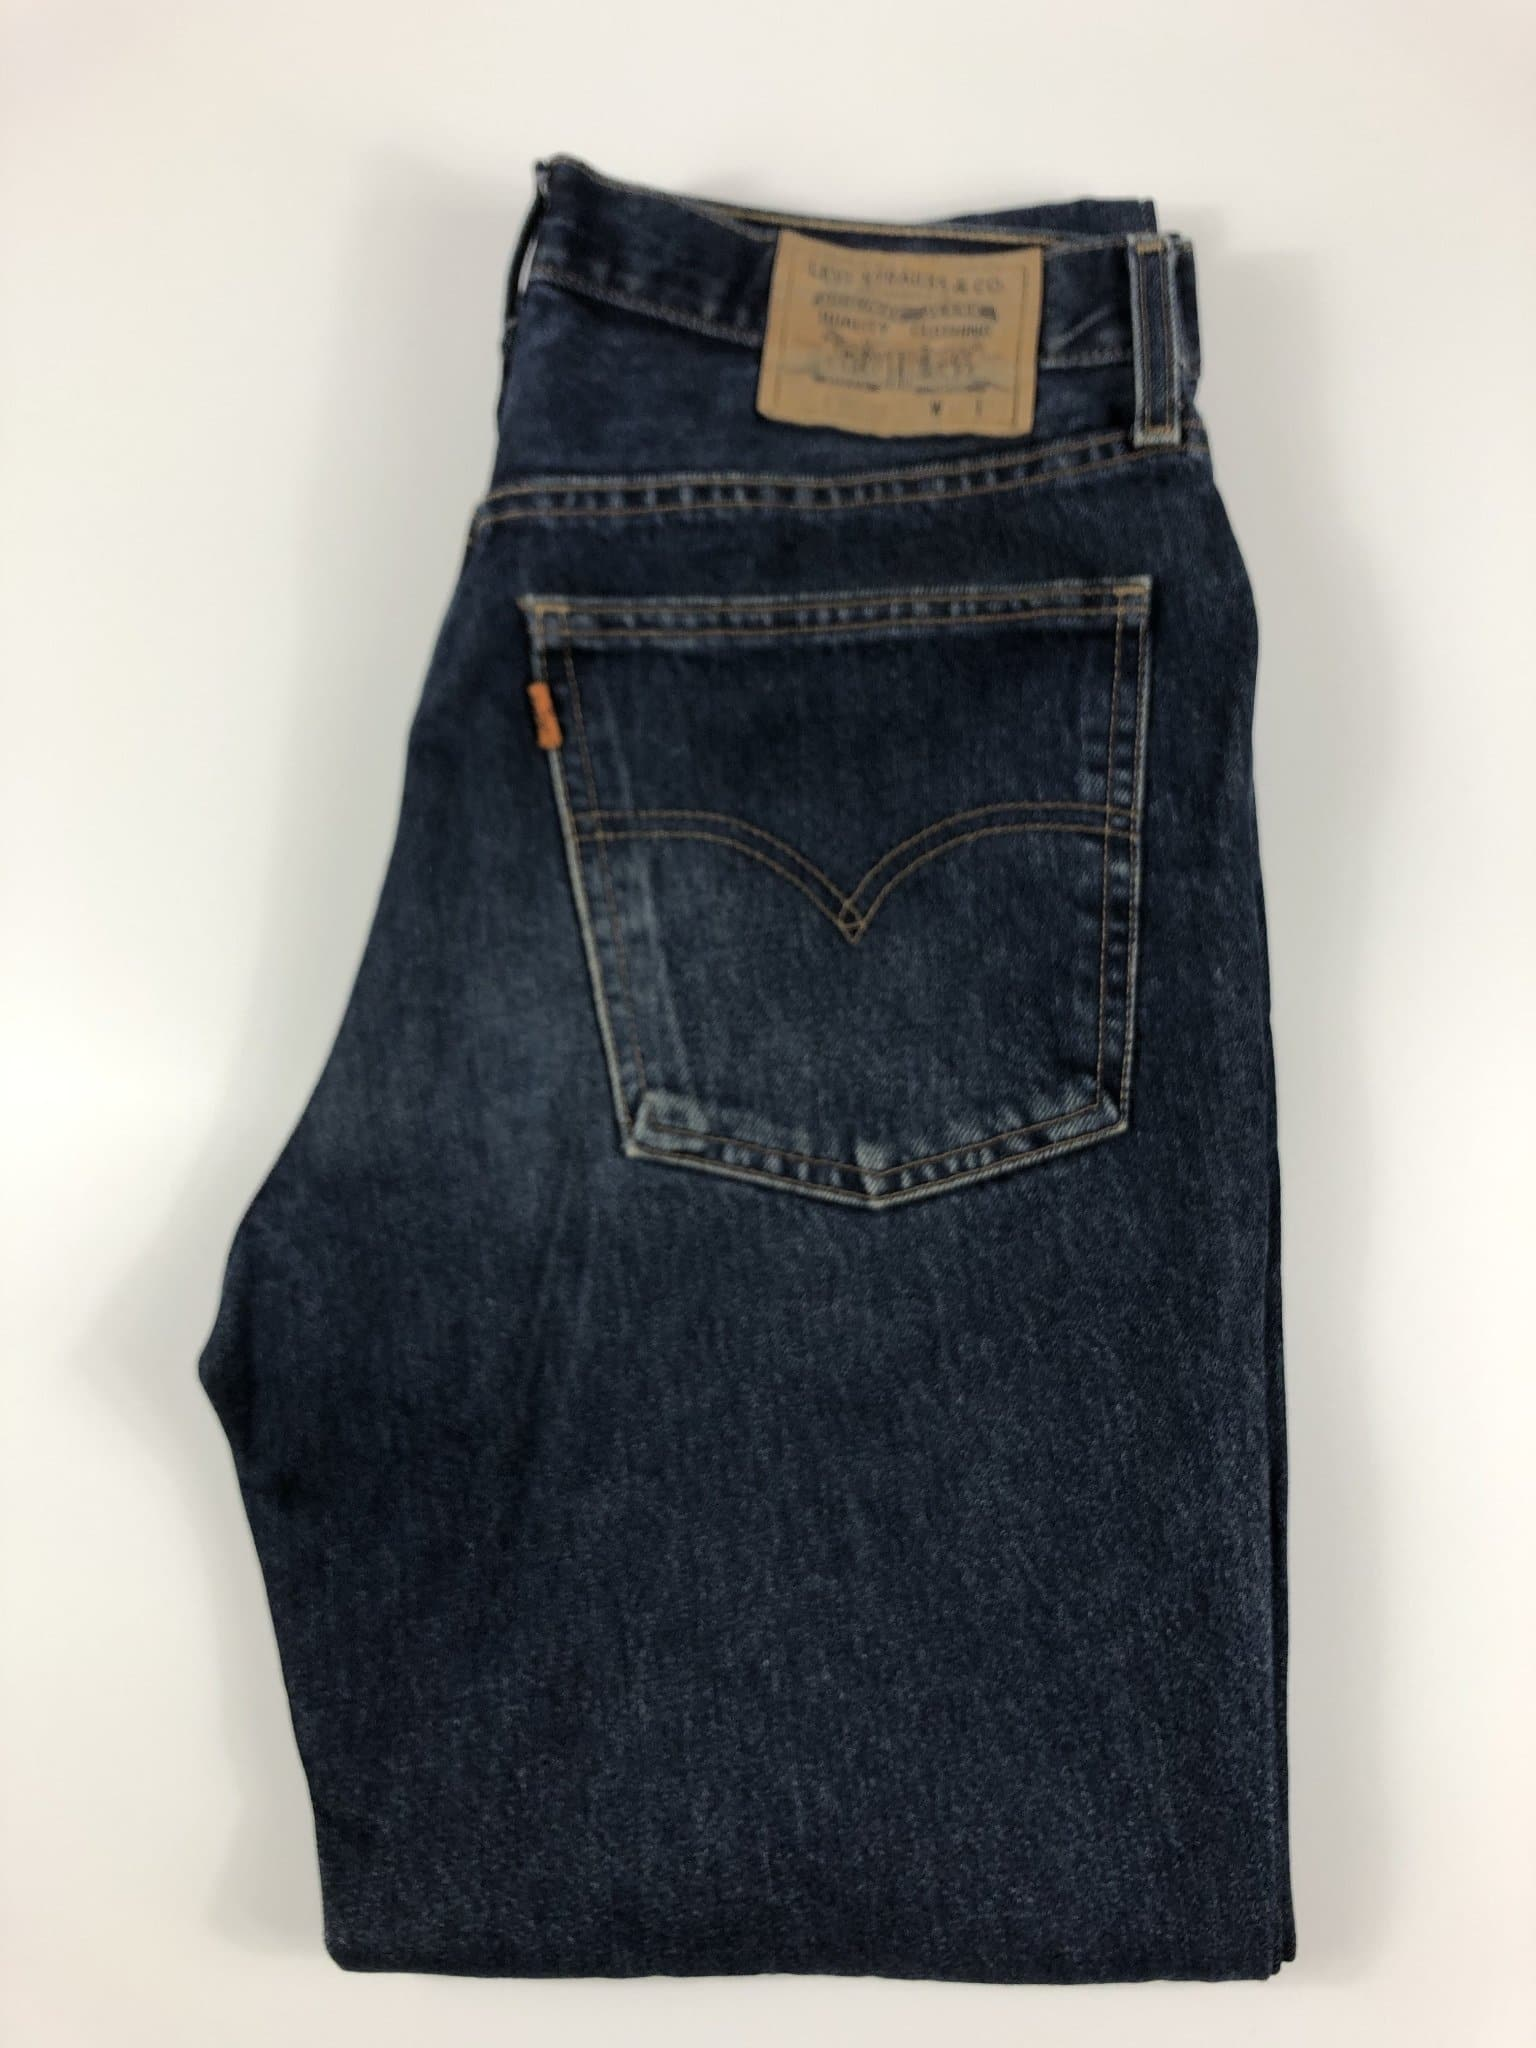 Vintage Levi's Classic 630 Jeans W34 L34 (E5) - Discounted Deals UK